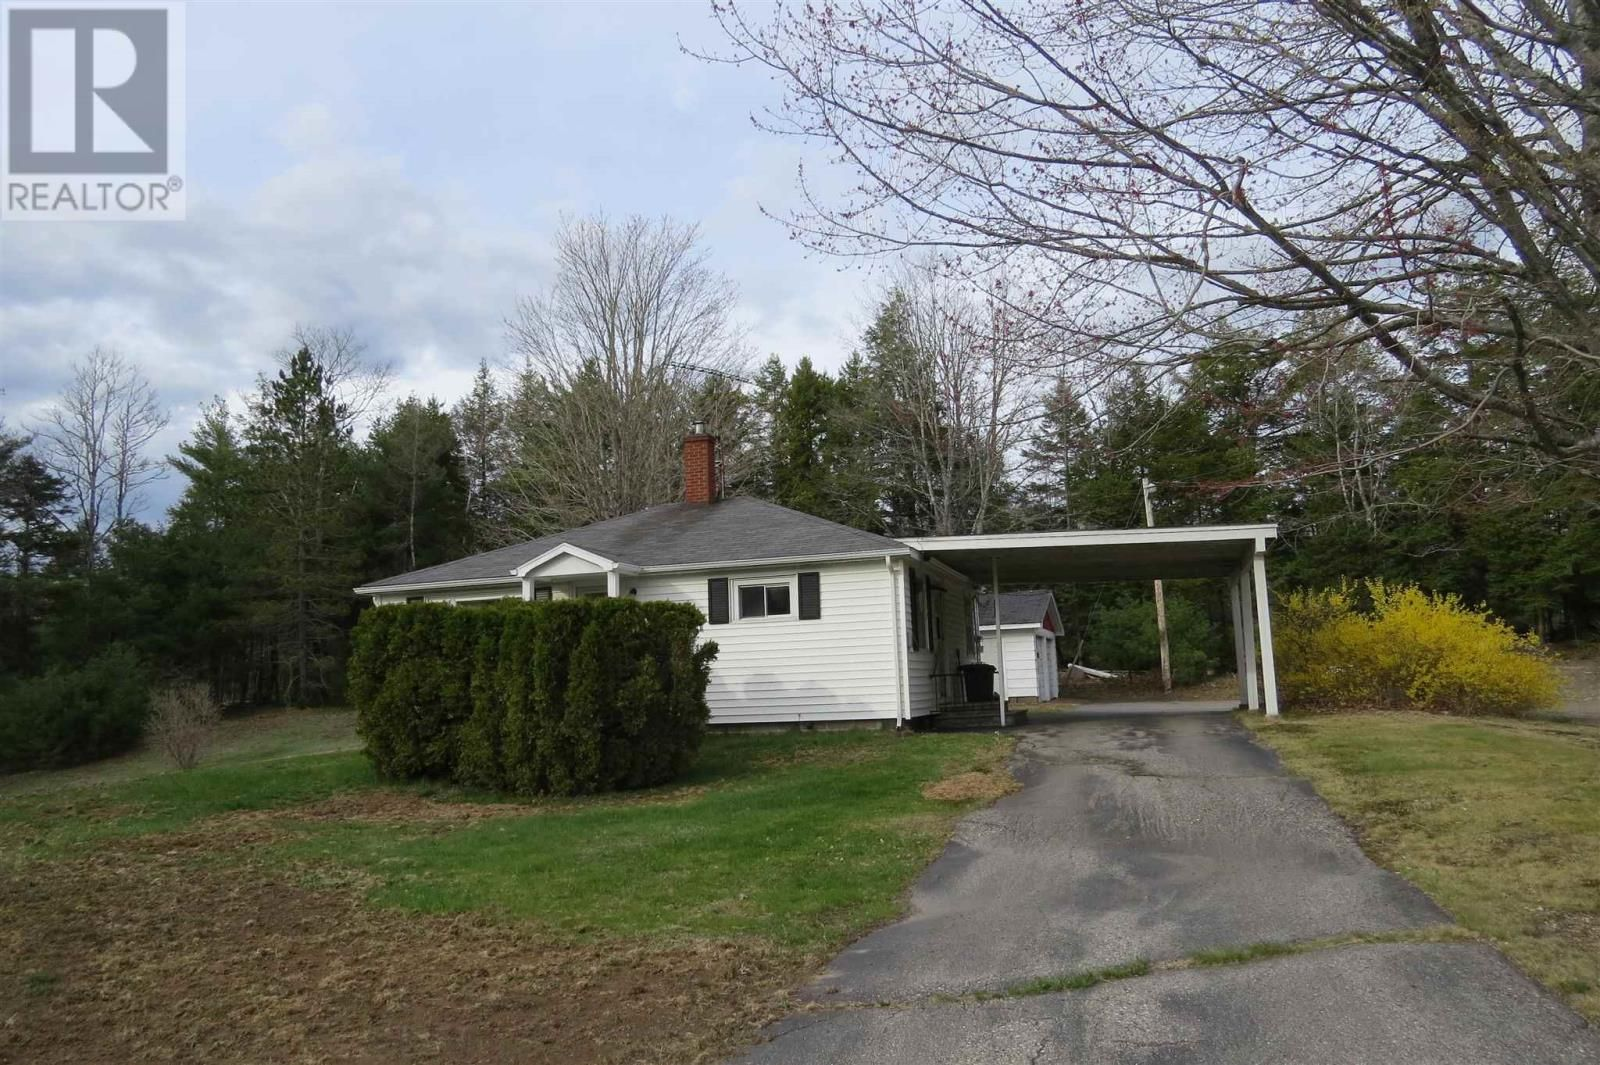 Main Photo: 1980 Highway 10 in West Northfield: House for sale : MLS®# 202110415